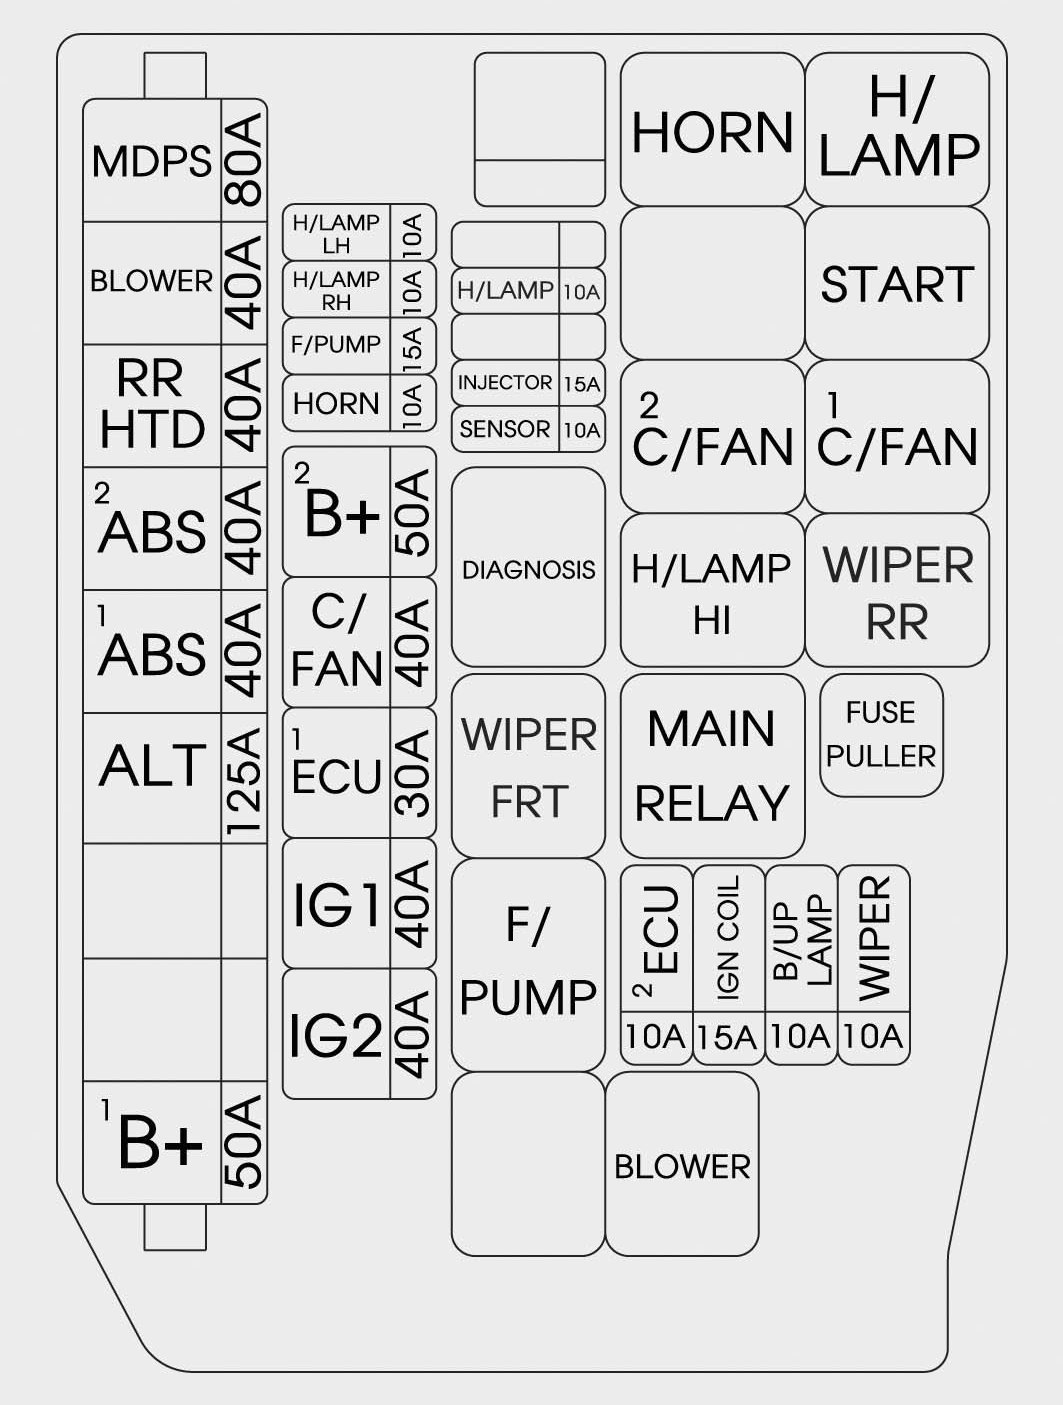 Hyundai Sonata Fuse Box Diagram : 31 Wiring Diagram Images